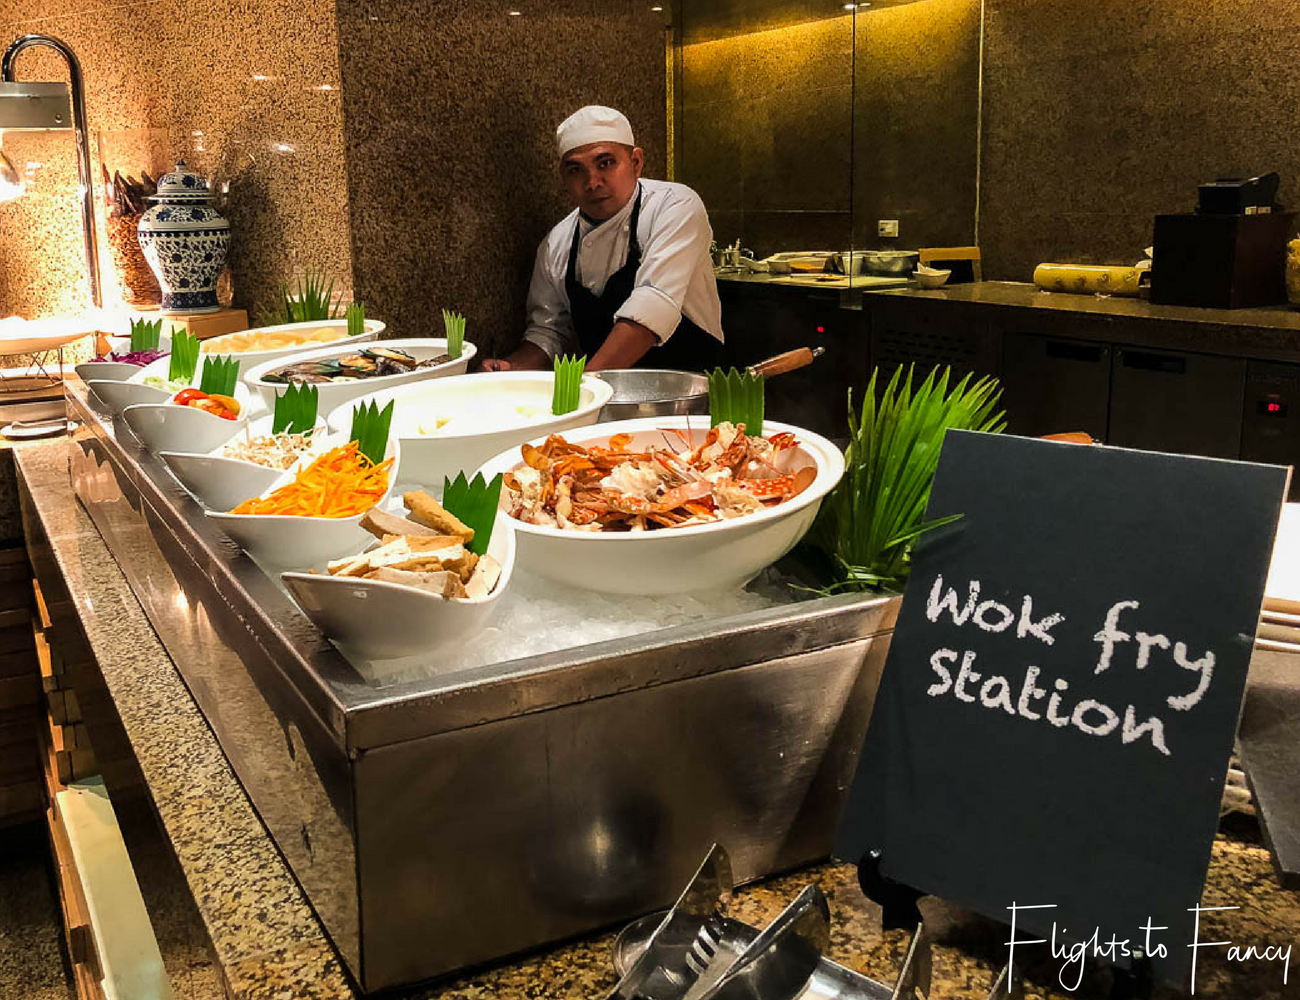 Hotel near SM Cebu City - Radisson Blue Cebu Dinner Buffet Feria Restaurant Wok Fry Station by Flights to Fancy